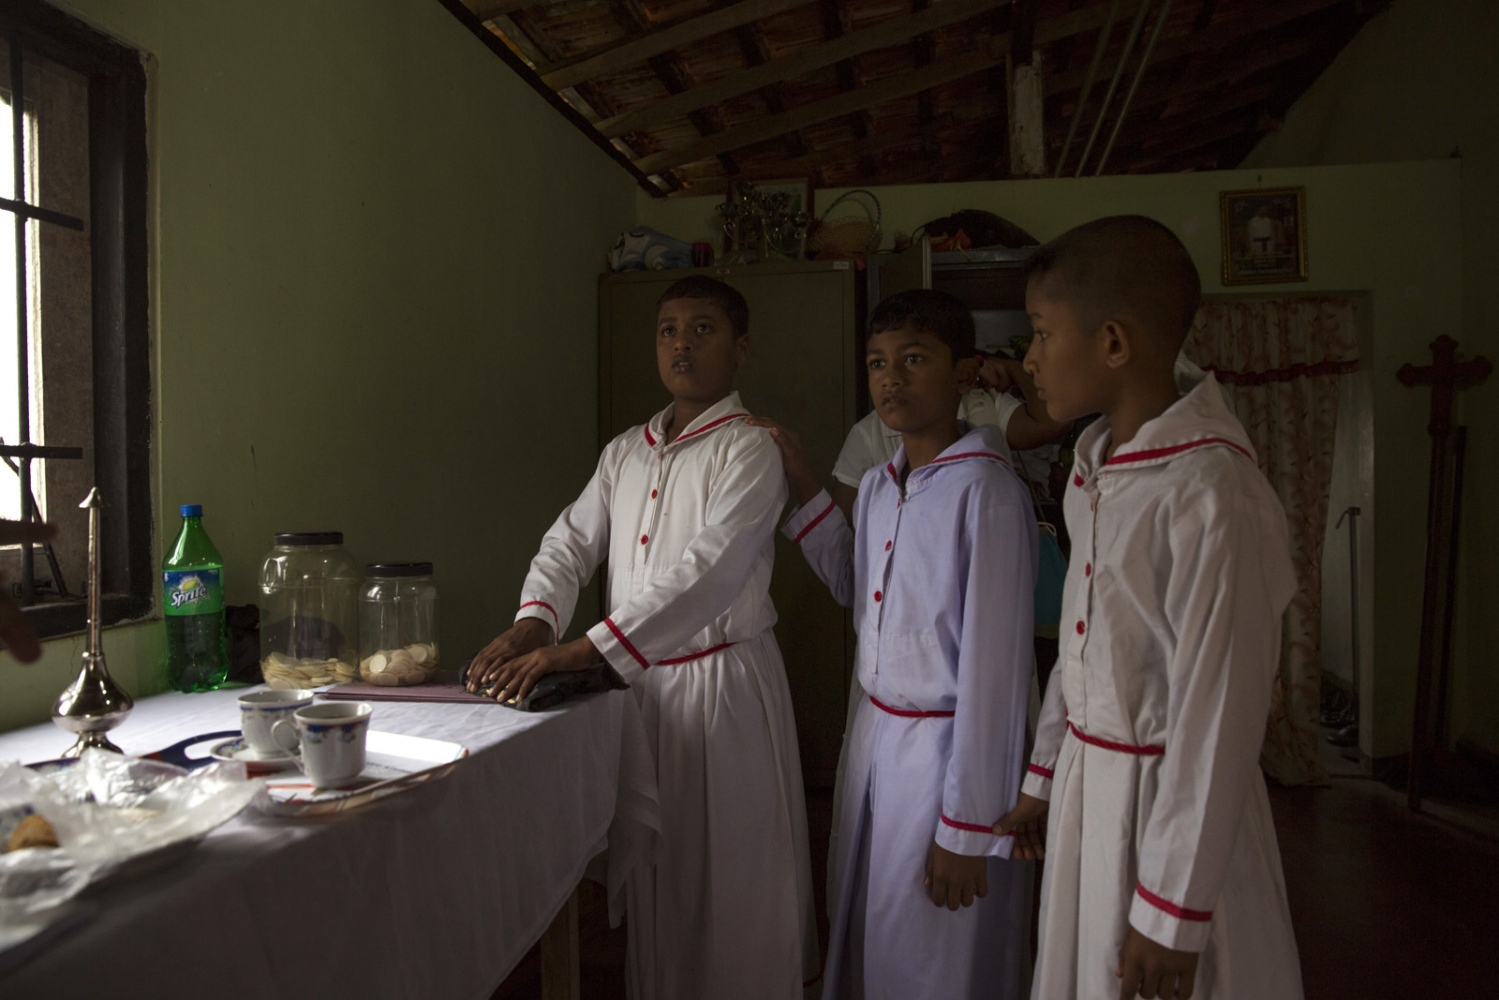 Jeewana Shehan, 13, (left) helping as an alter boy at the Roman Catholic church in Sirambadiya village. His mother is Afro-Sri Lankan but his father is Sinhalese and has lost his African appearance.